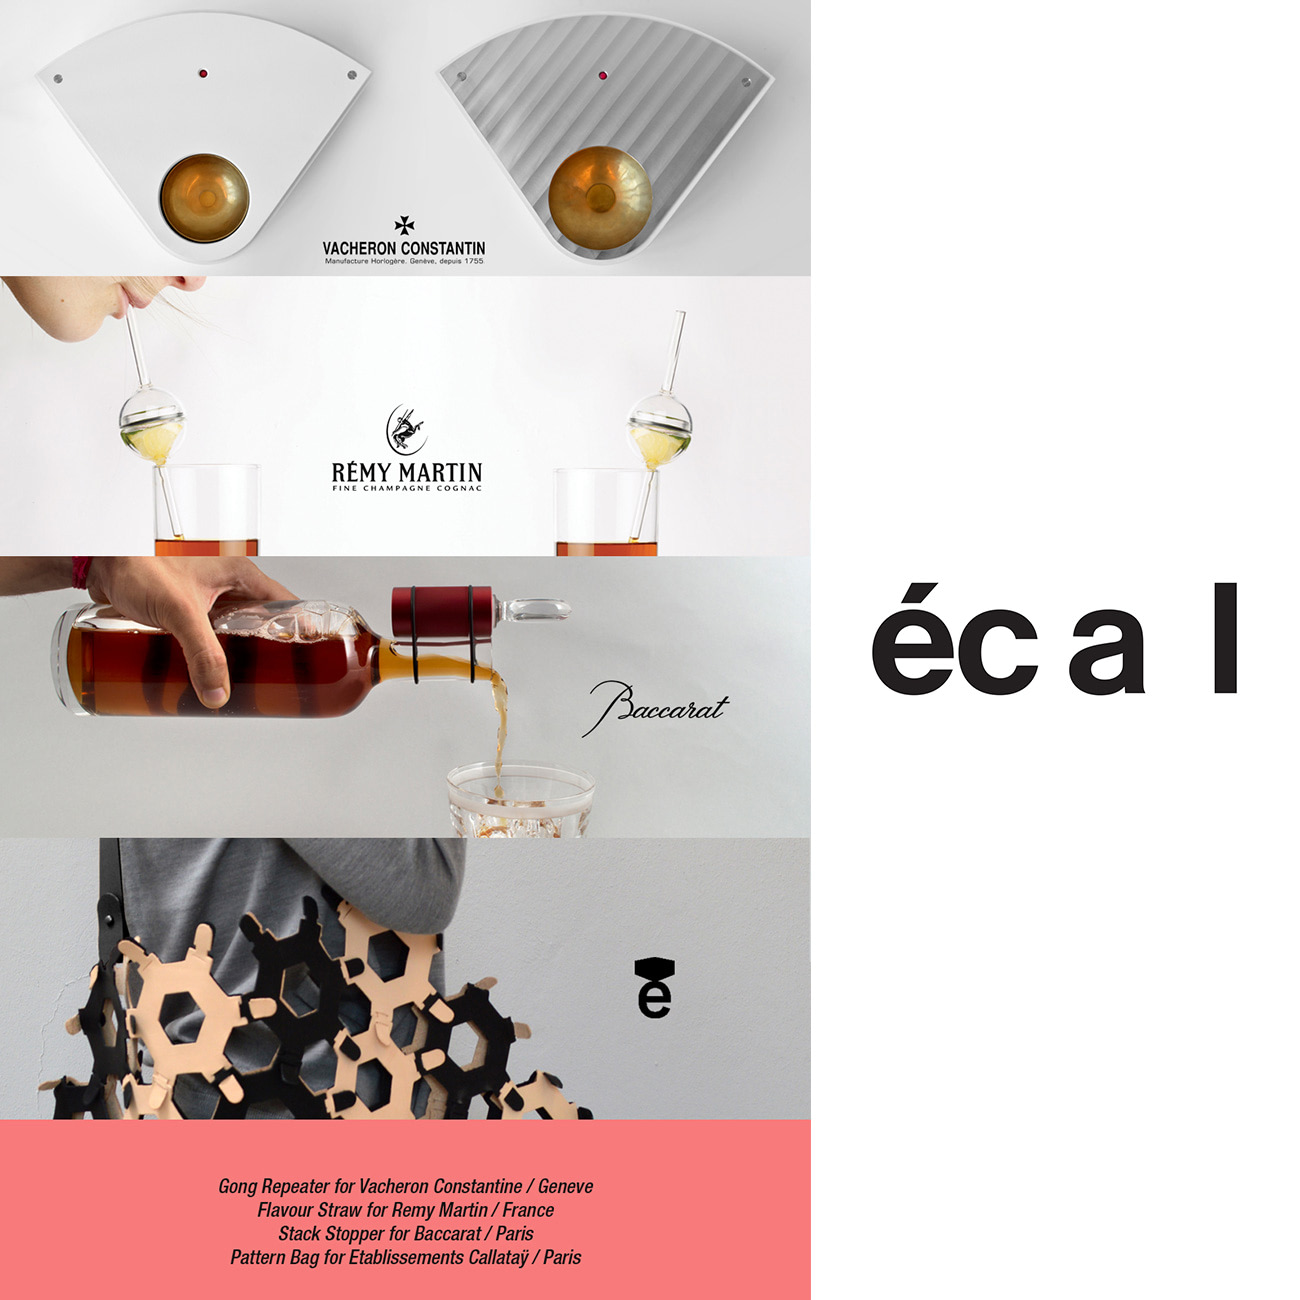 "Jordi Pla Studio presents four new products designed at Ecal during the ""Mas Luxe"" for craftsman and luxurious companies like: Vacheron Constantin from Geneve. Baccarat from Paris, Remy Martin from France and Etablissements Calataÿ from Paris."